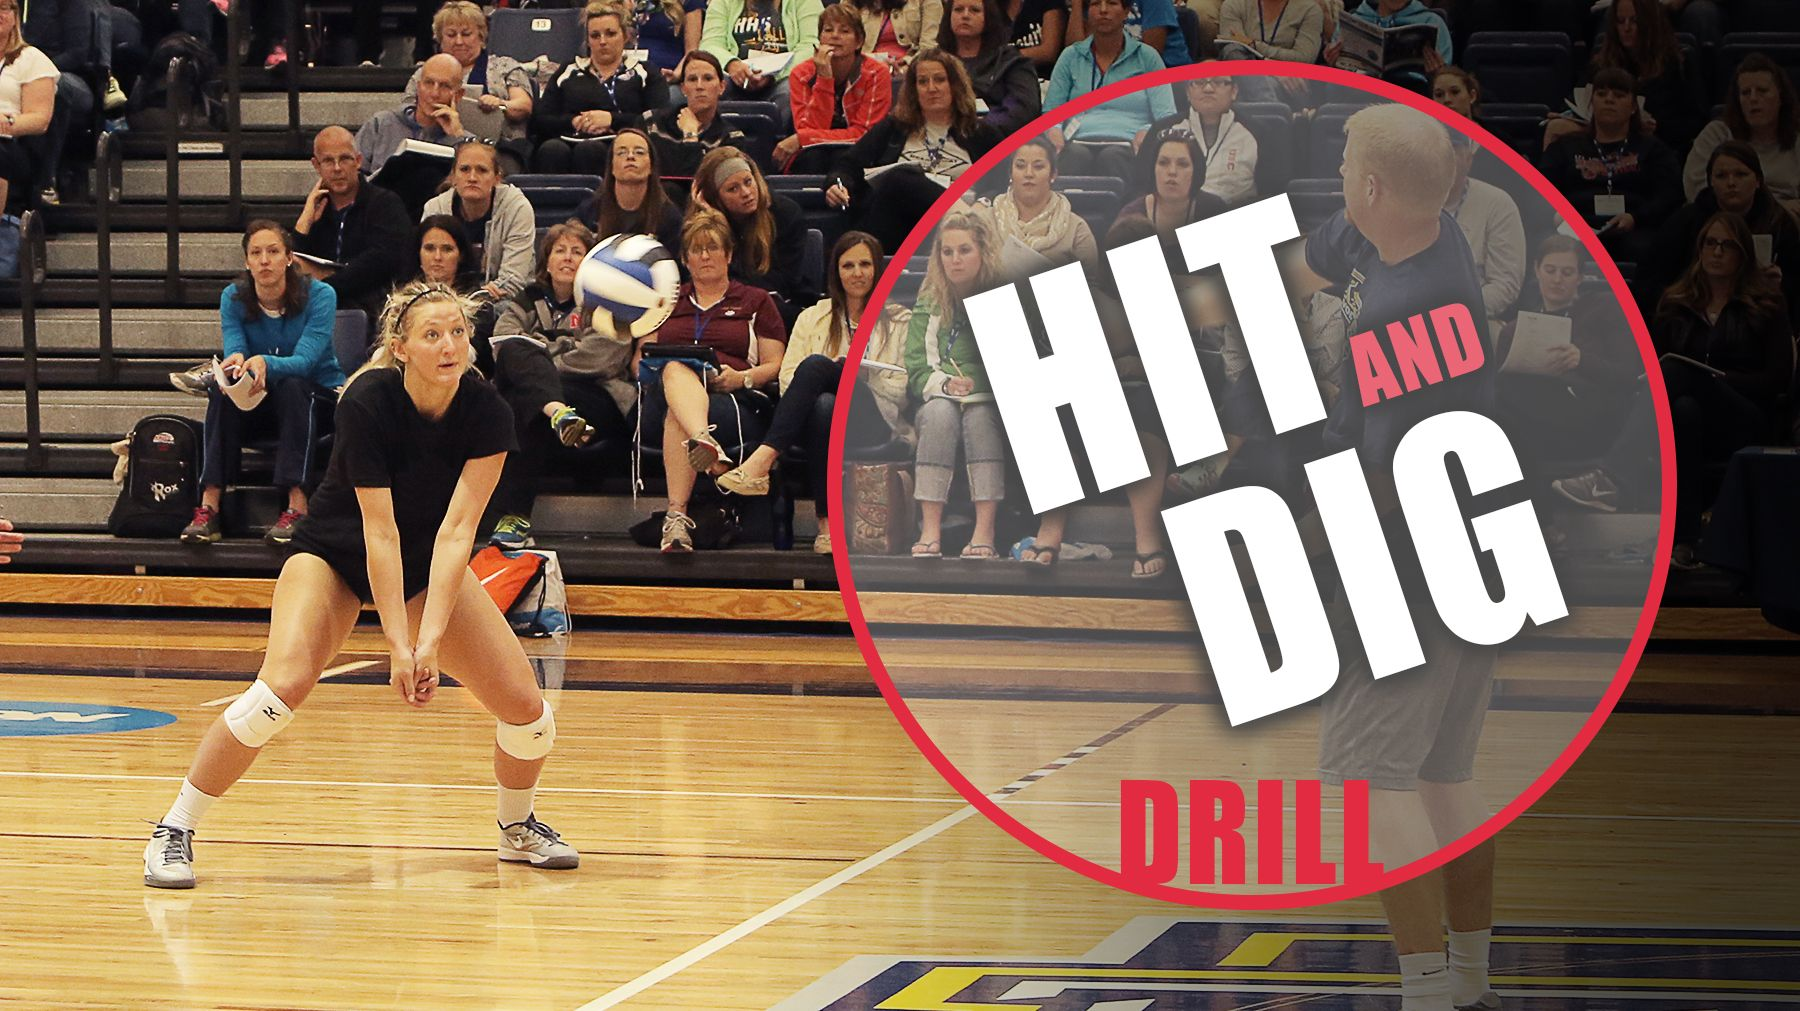 Are Your Players Ready To Step Out Onto The Court This Drill From John Dunning Will Get Them Ready Volleyball Practice Volleyball Workouts Volleyball Training